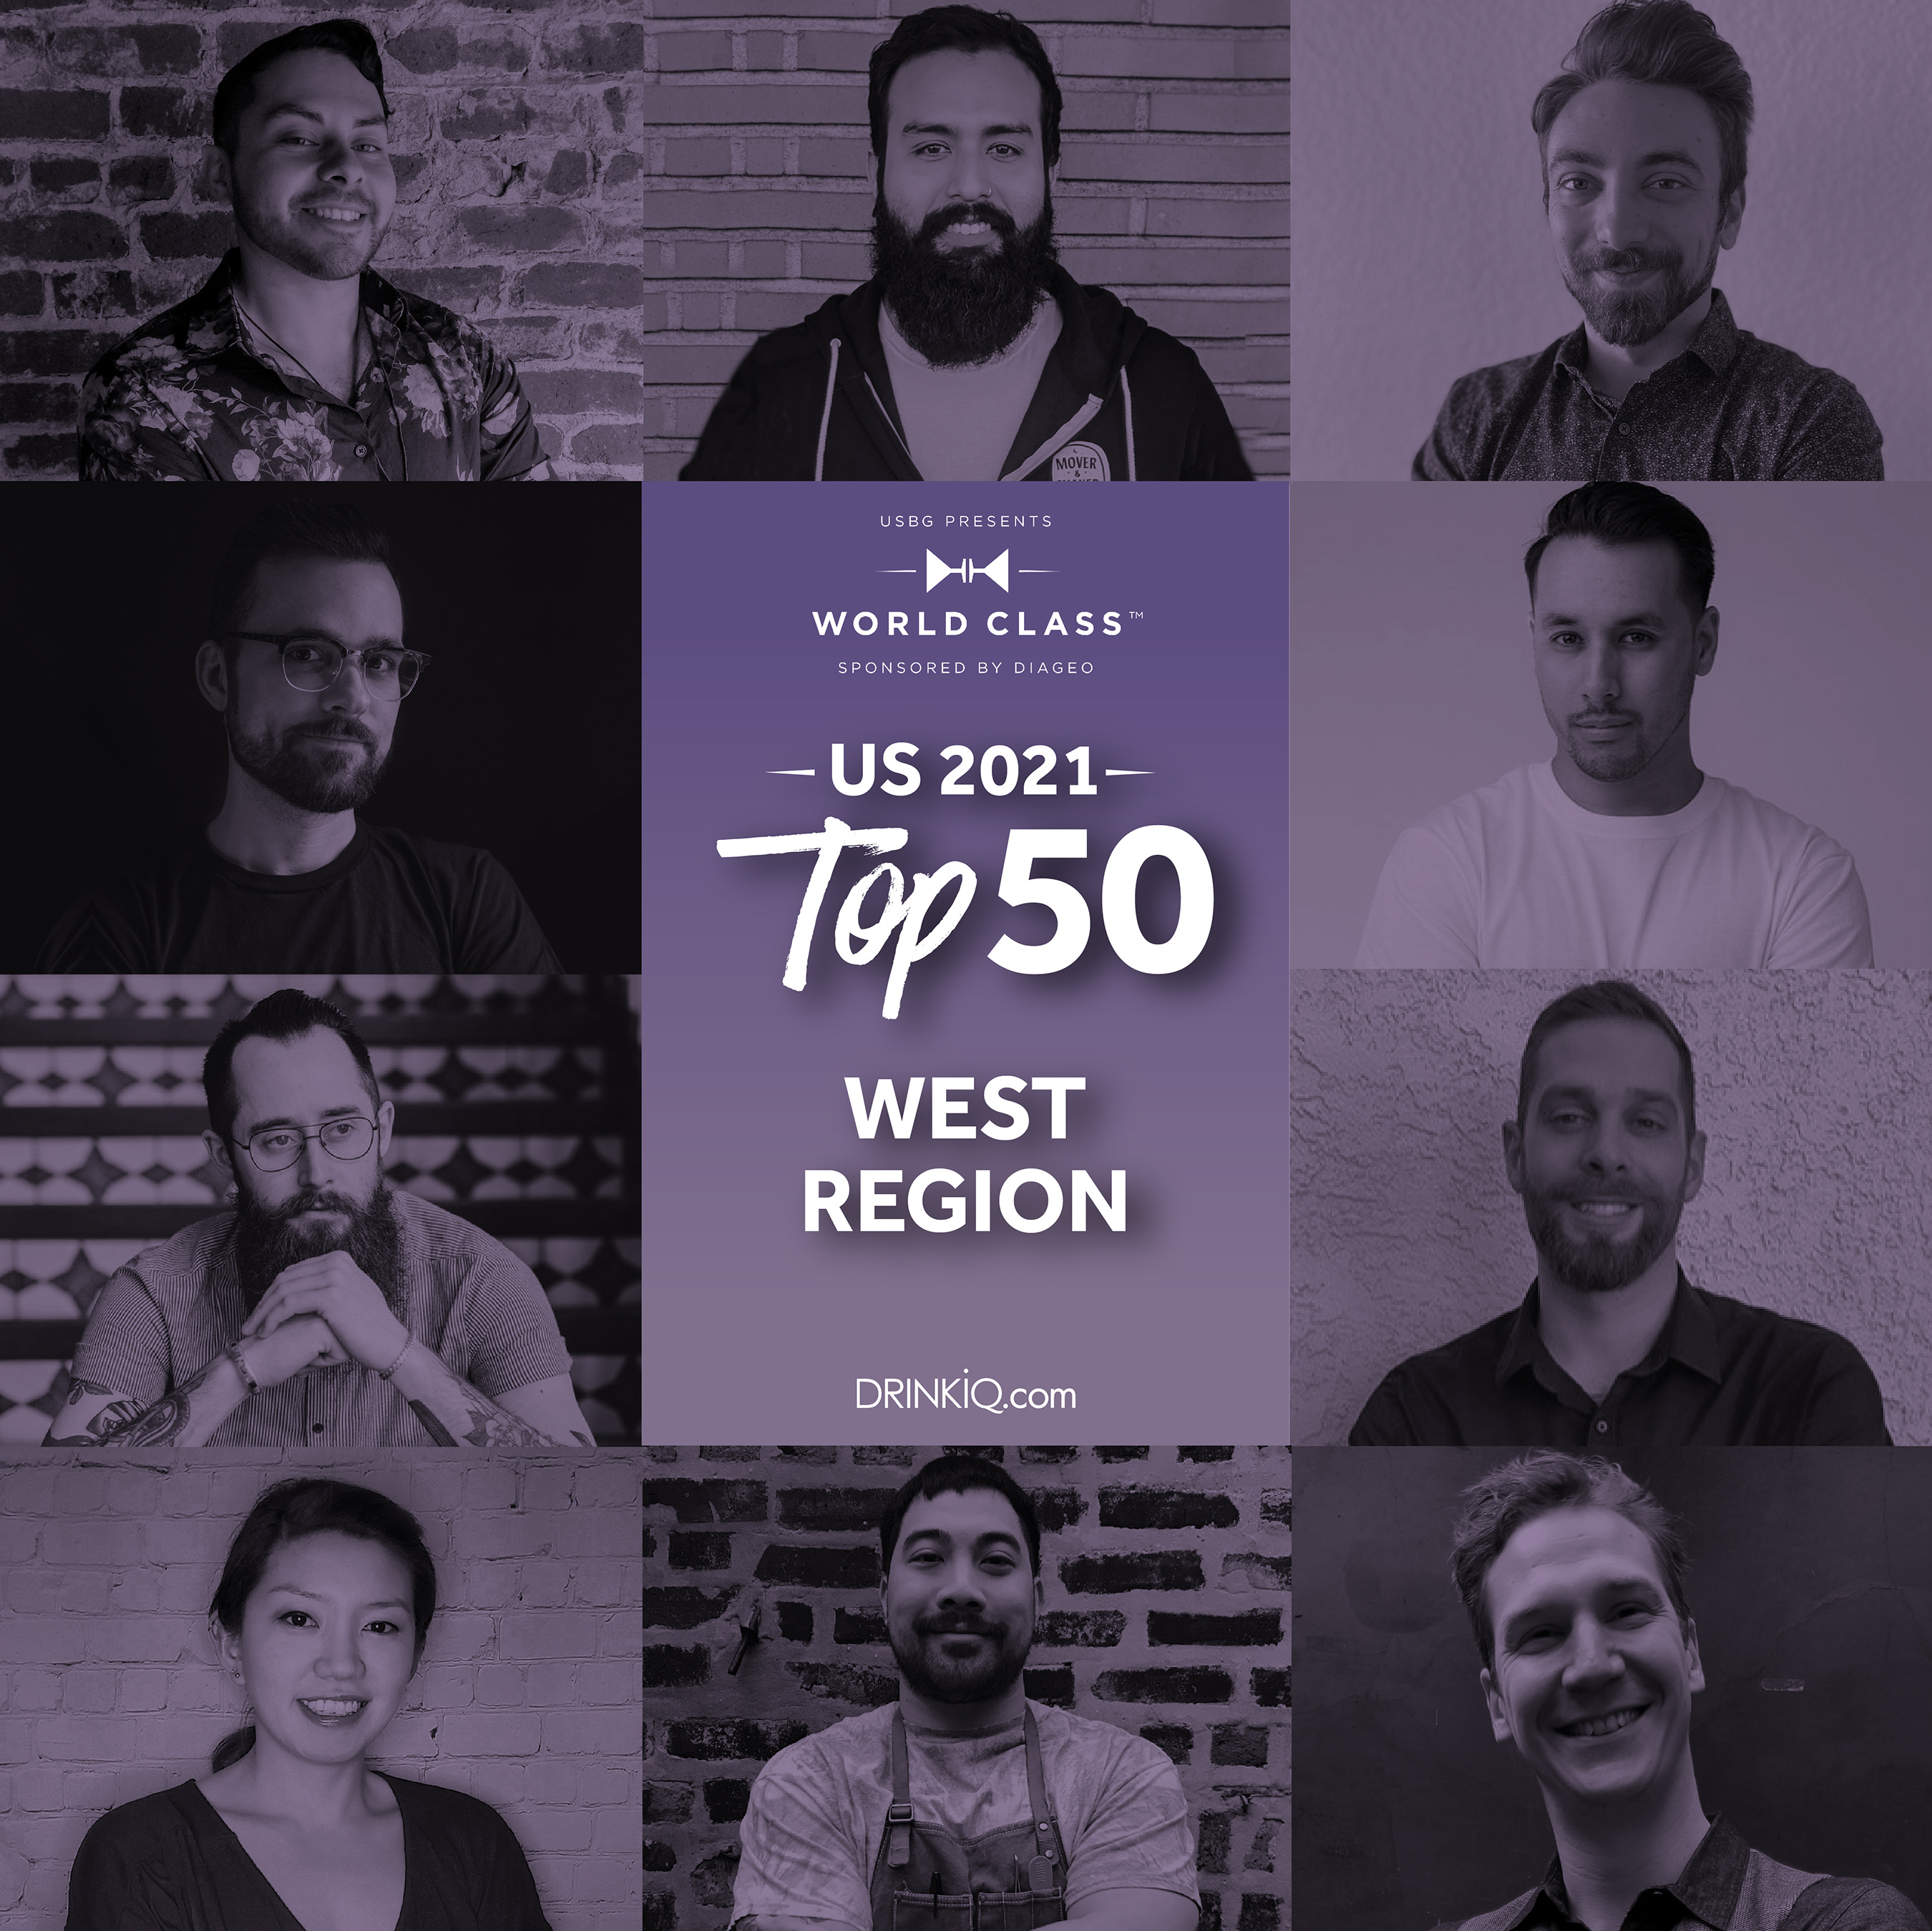 These ten bartenders are representing the best of the west. Which of these competitors will make it to the Finals for a chance at the USBG World Class Bartender of the Year title?